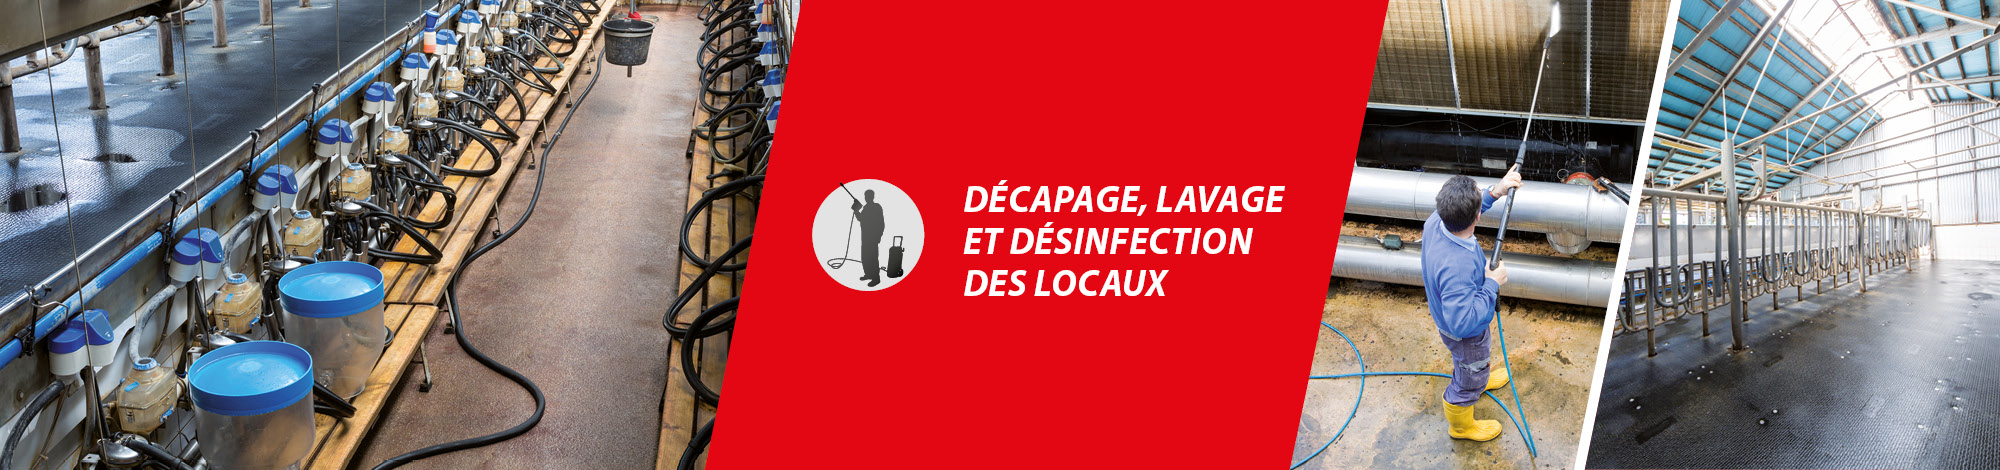 décapage désinfection